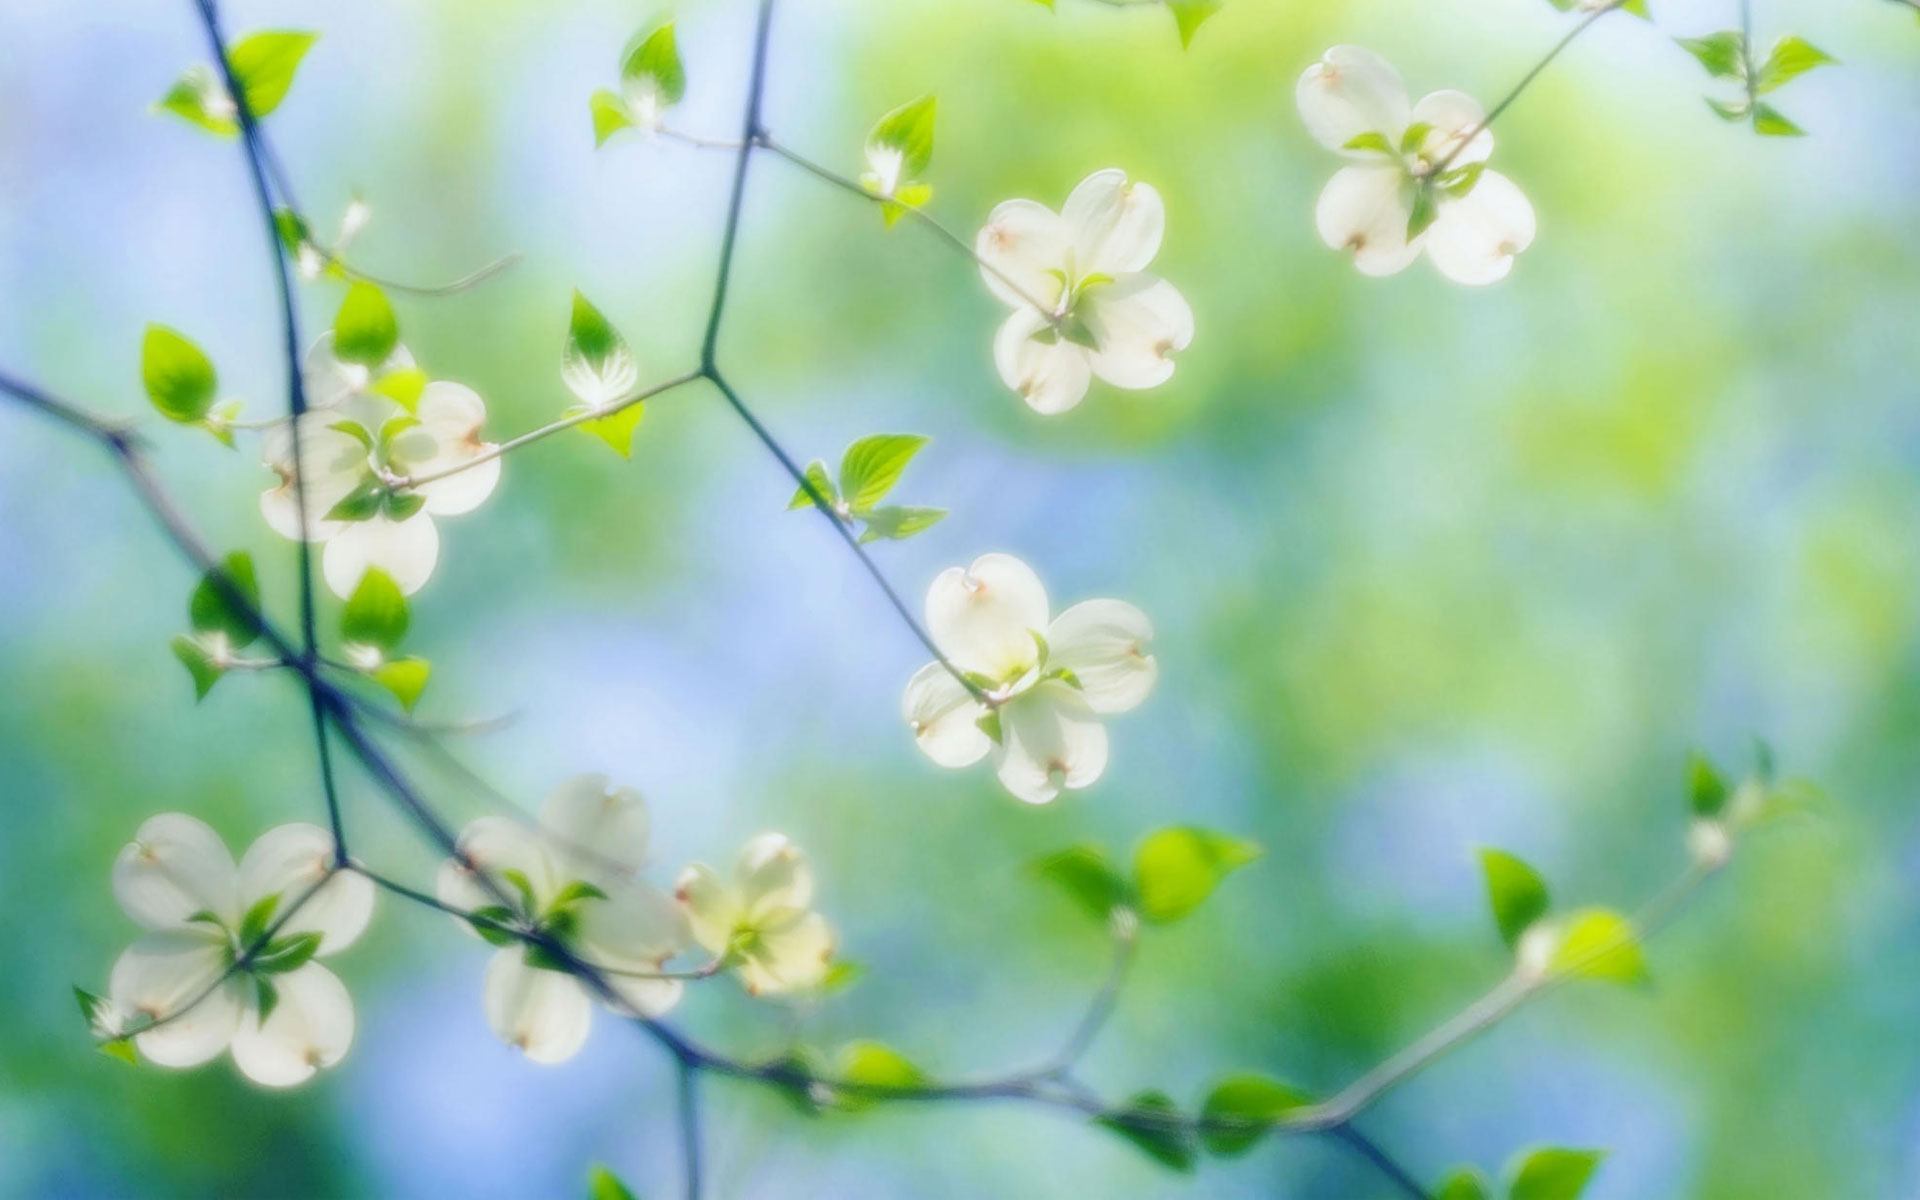 Dogwood Flowers Wallpaper HD